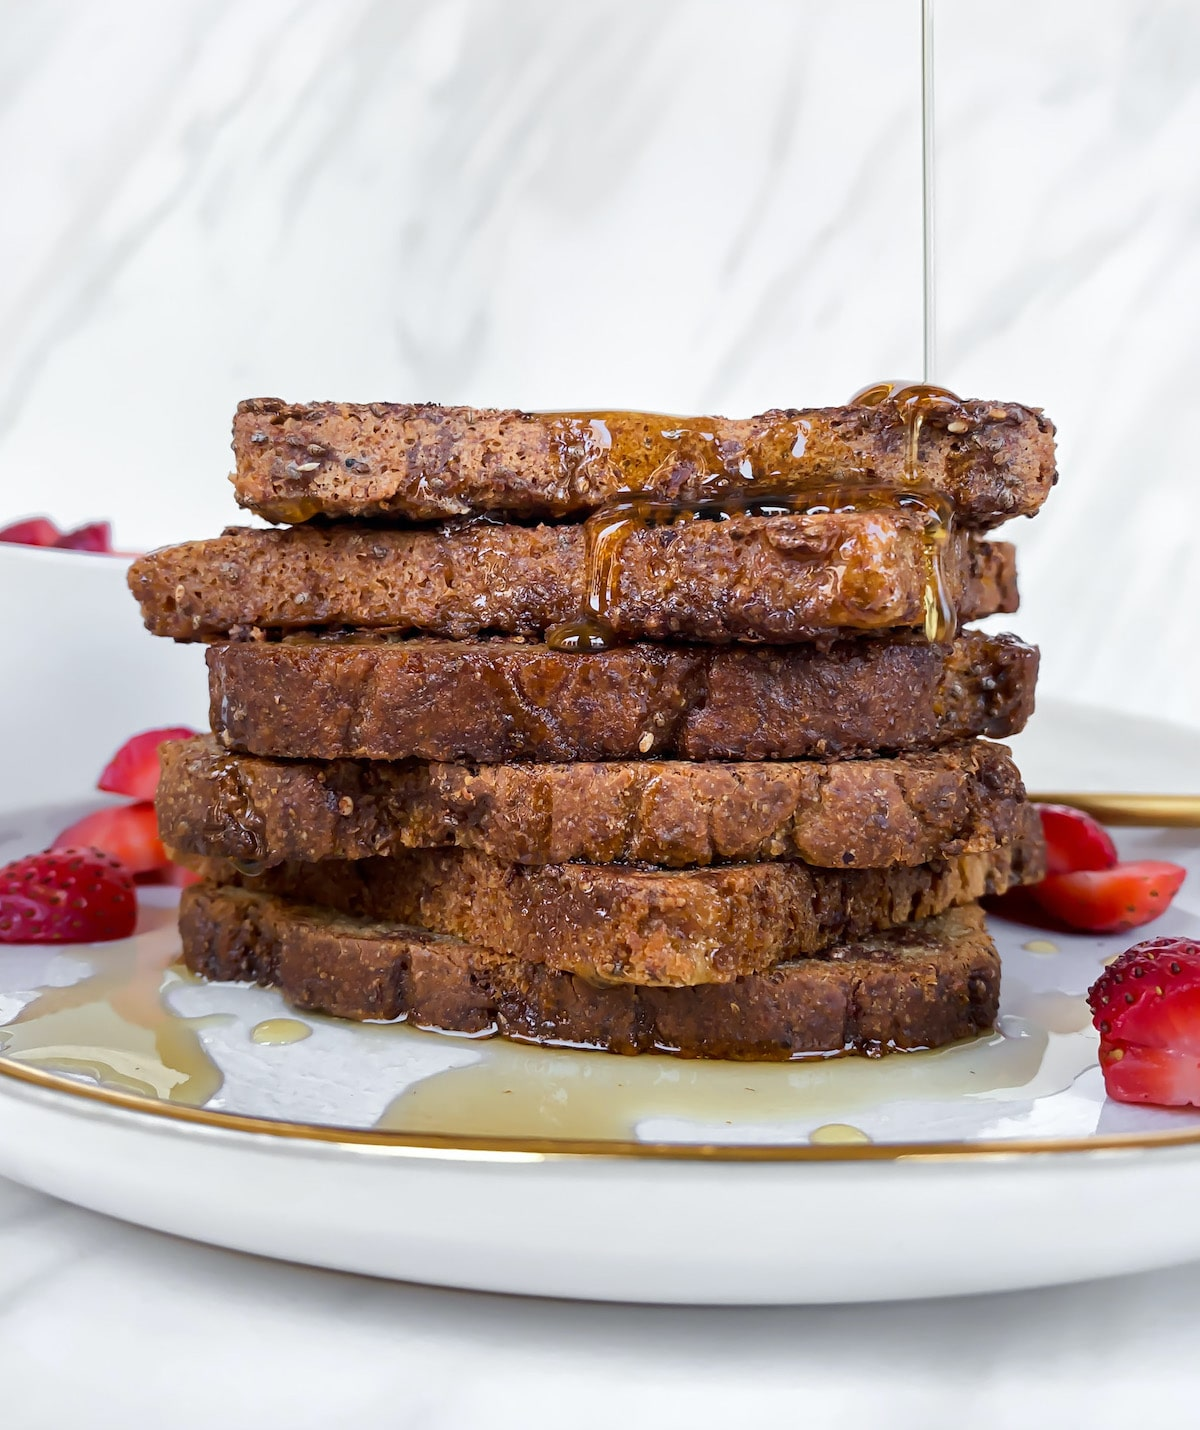 Side view of a stack of healthy vegan gluten free golden brown french toast with bright red strawberries and syrup pour